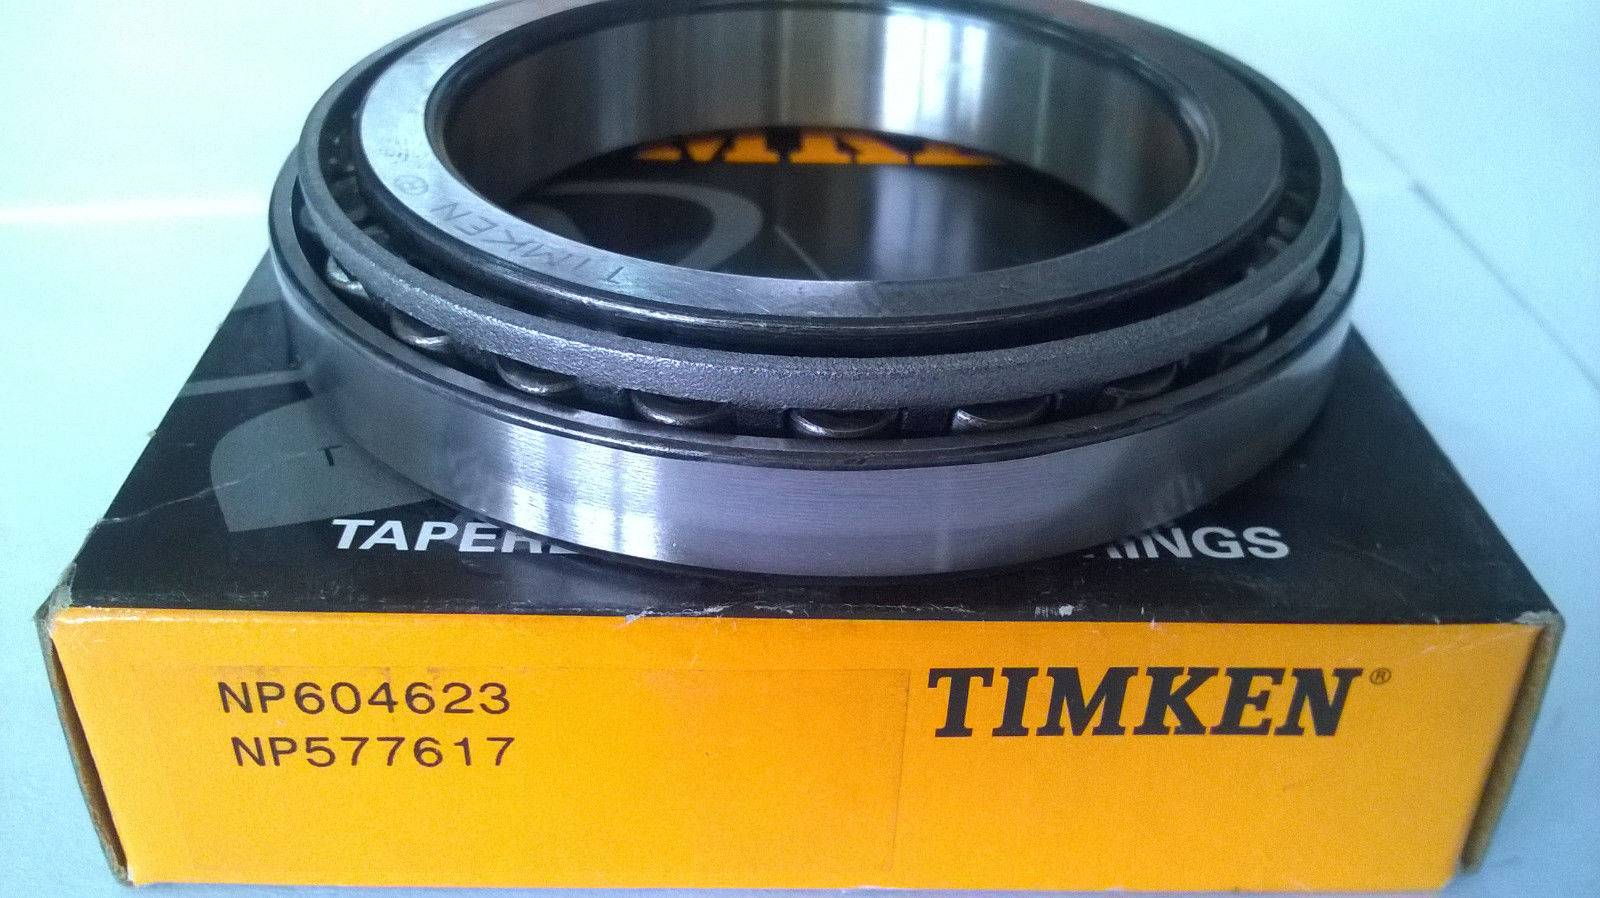 TIMKEN NP604623 Timken Tapered Cone Bearings